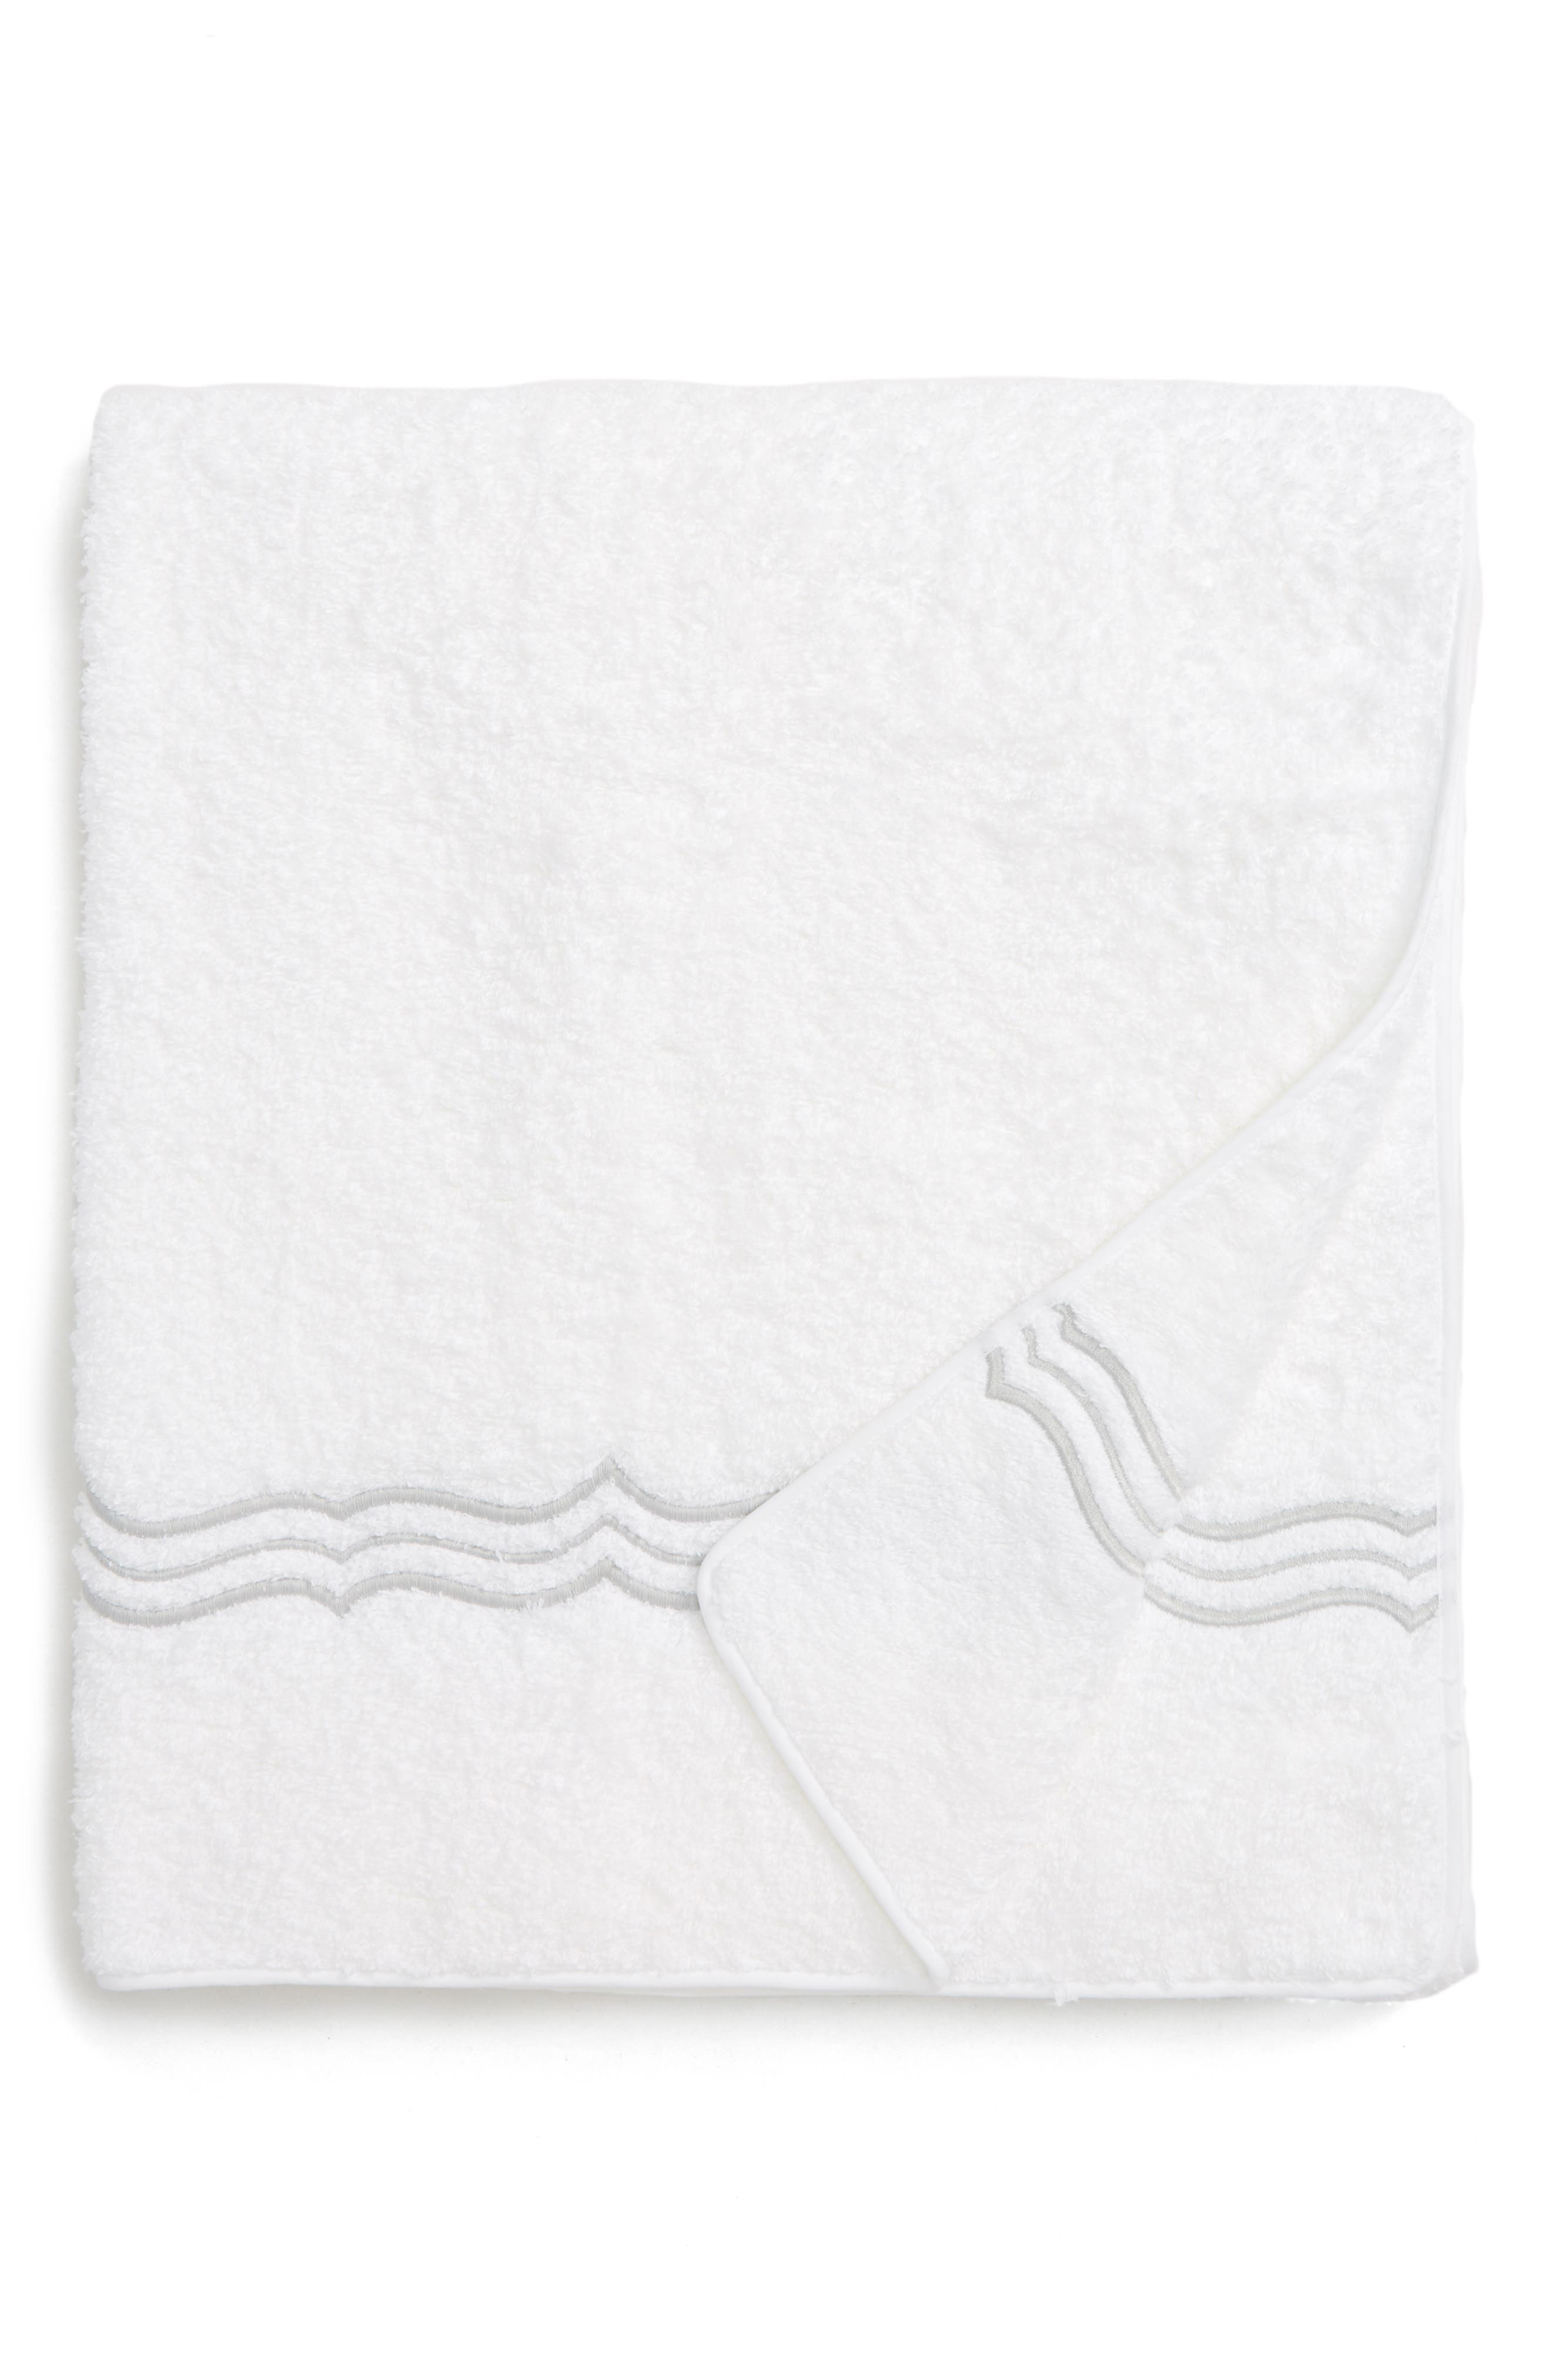 MATOUK,                             Paola Bath Towel,                             Main thumbnail 1, color,                             040